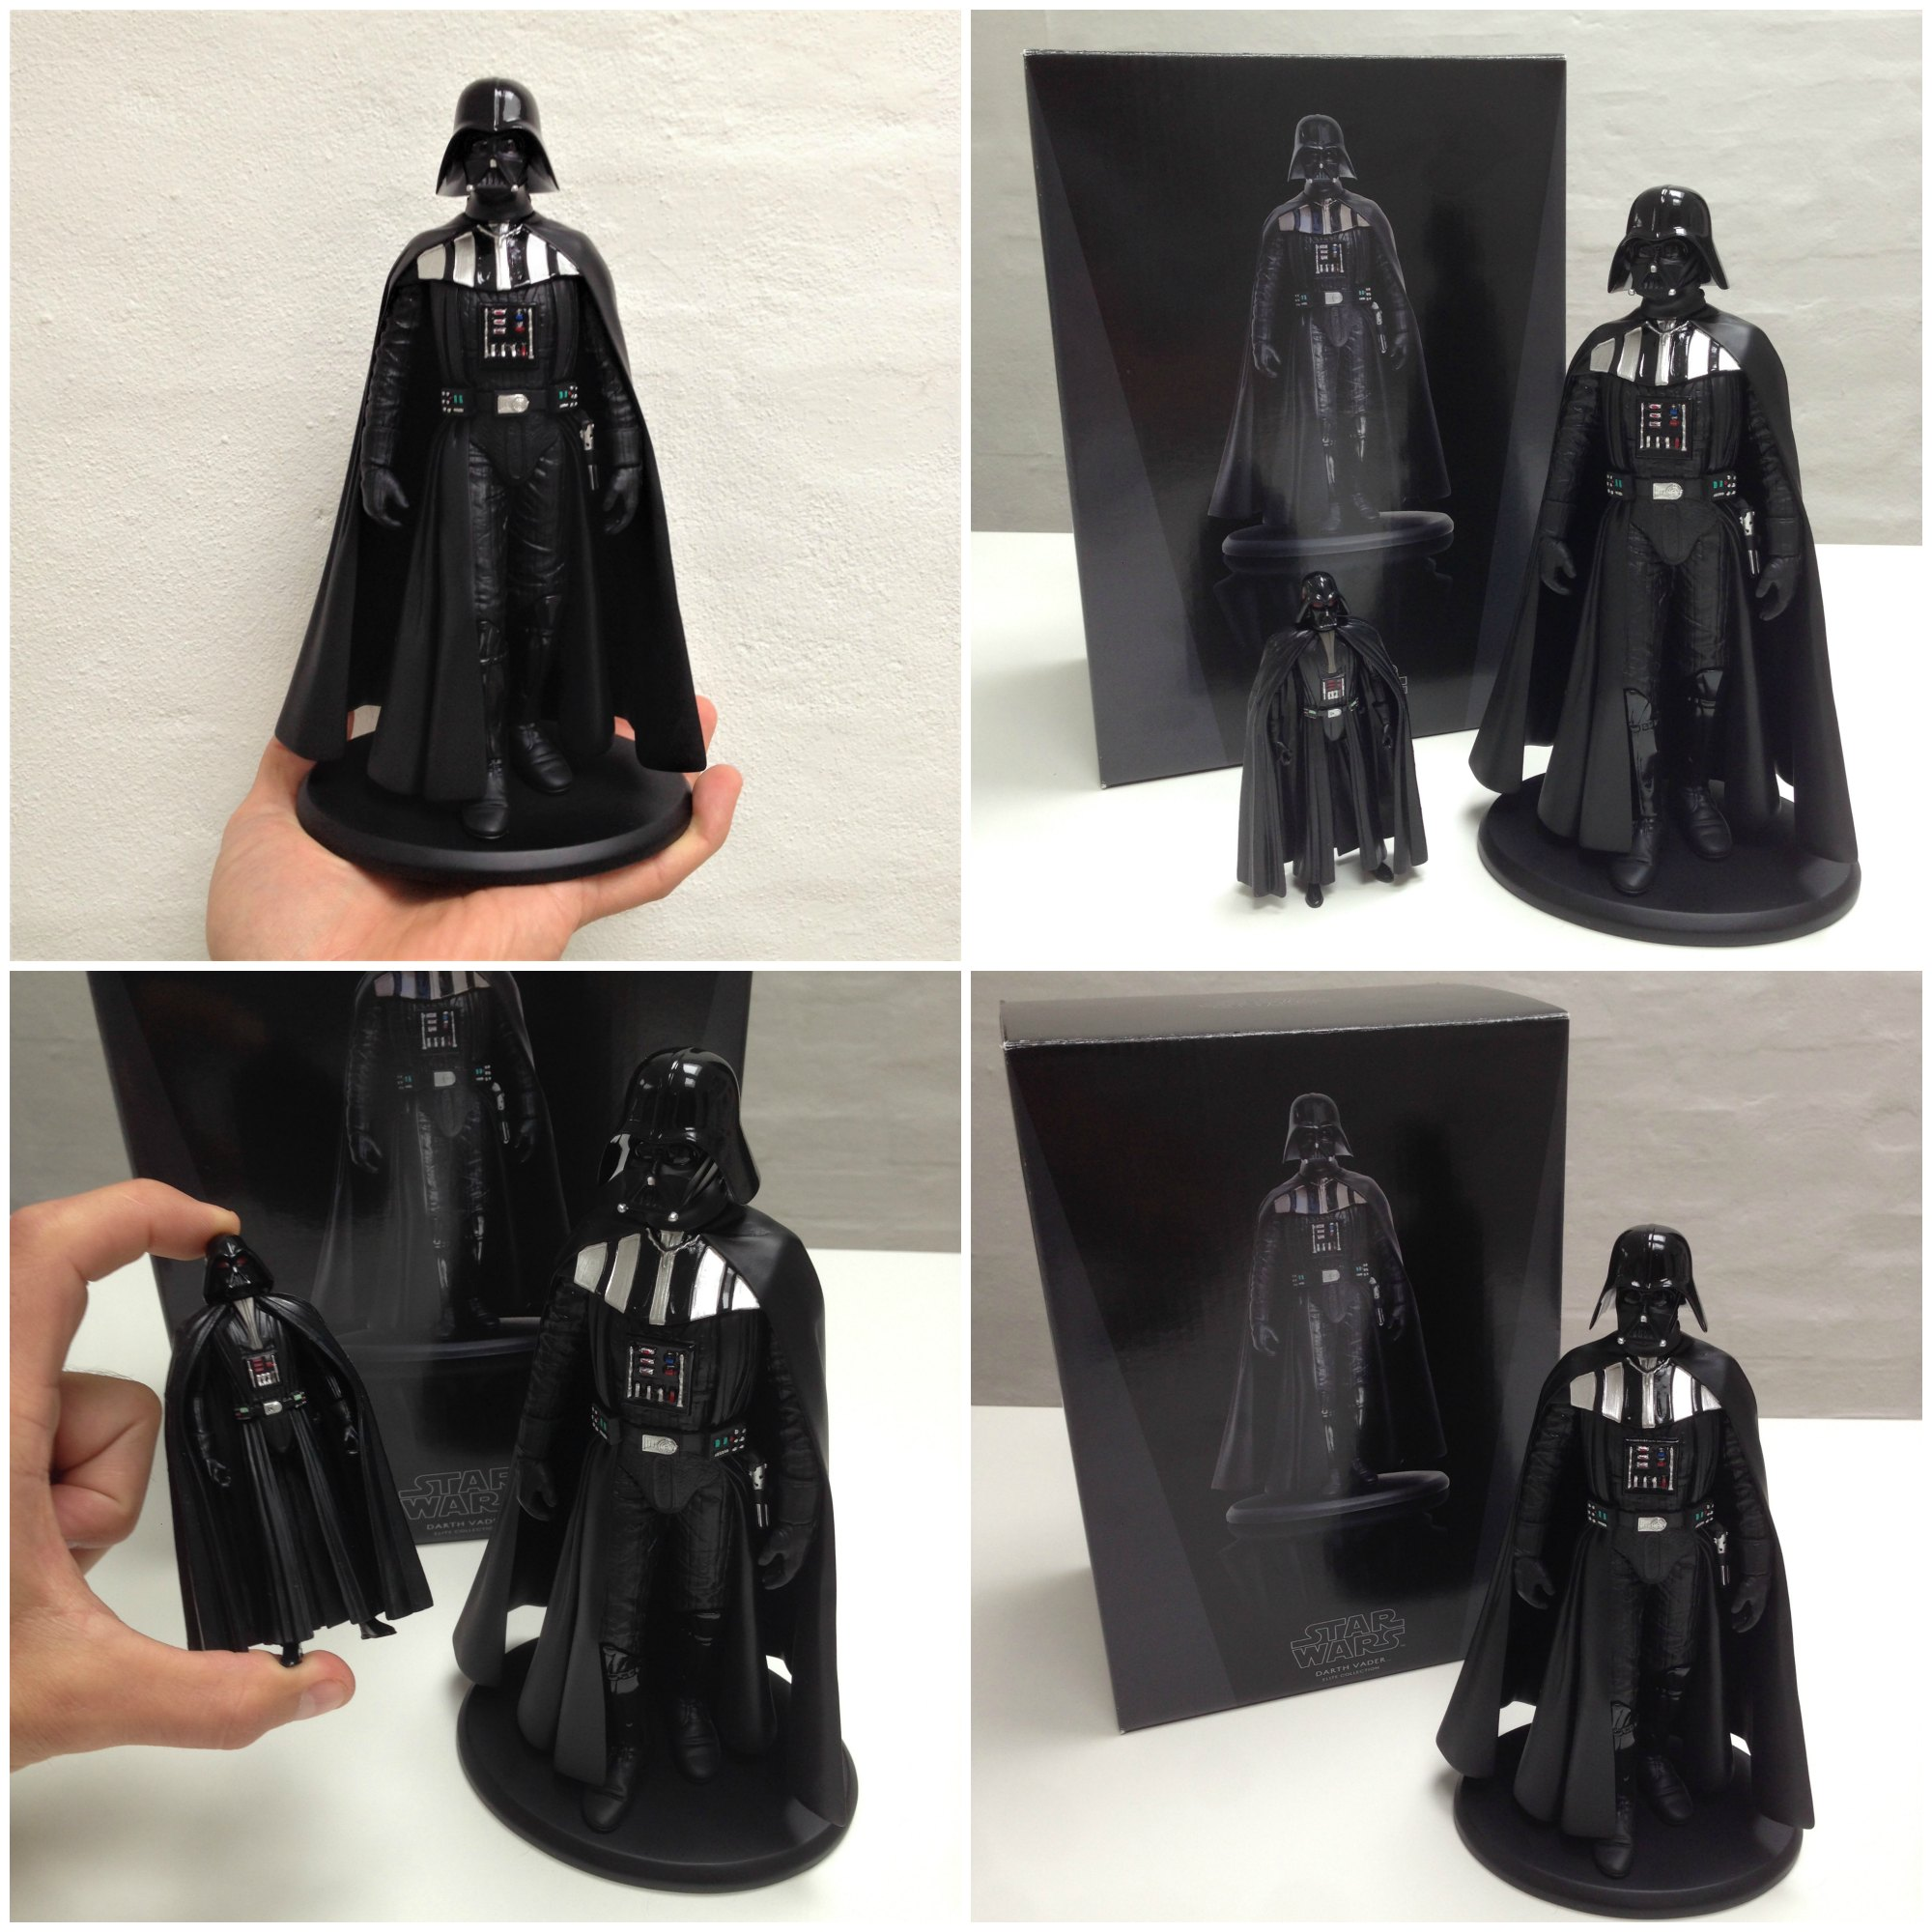 Darth Vader - Attakus Elite Colection - Star Wars - Wendros - Merchandise - Darth Vader-figur - Fiktion & Kultur (3)